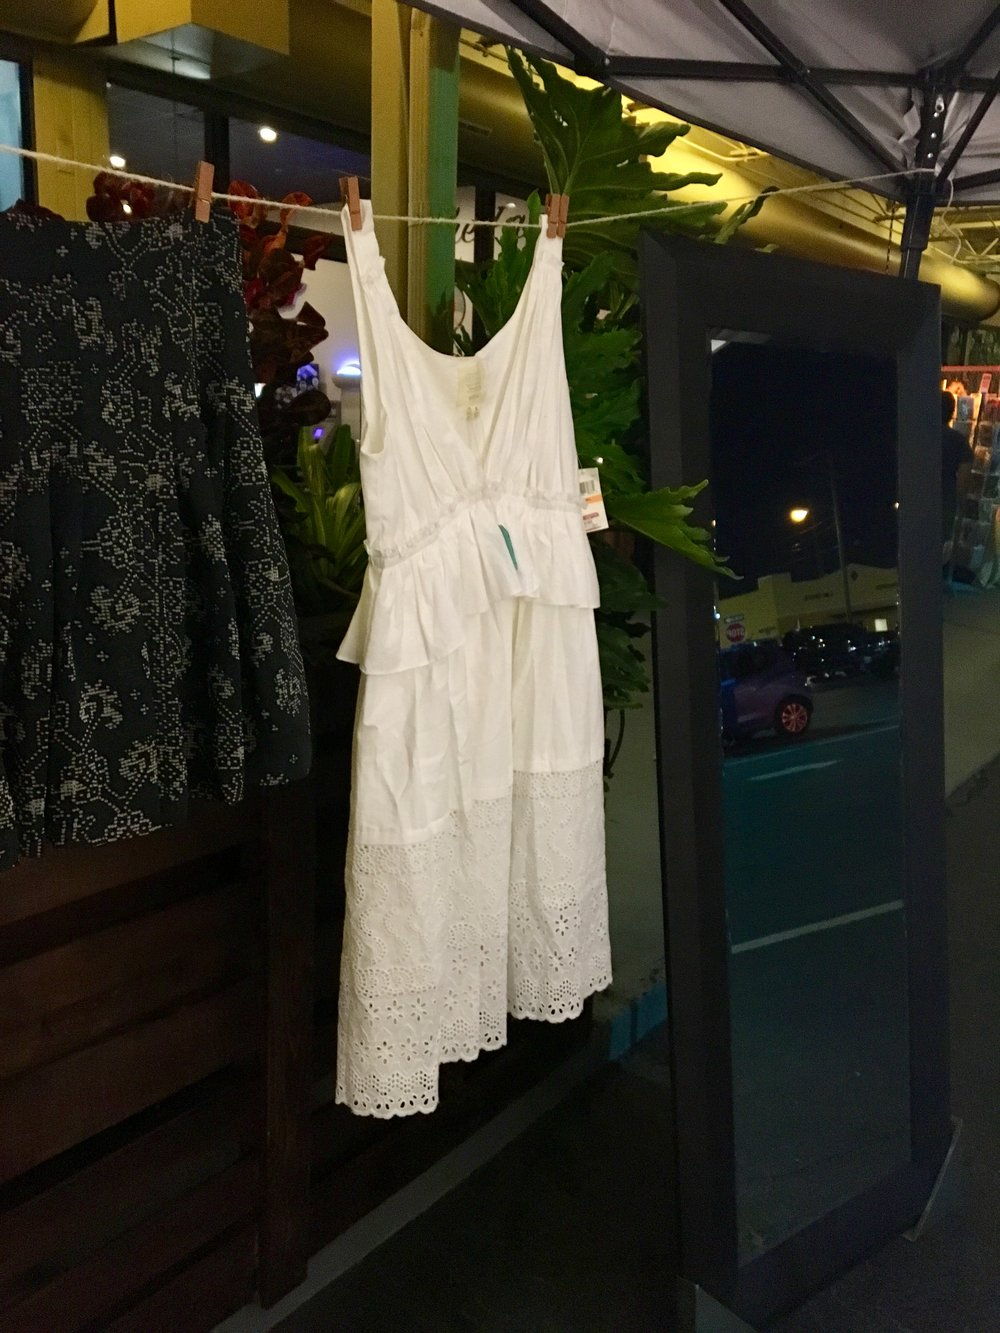 Valhalla in Tampa, Recycled Clothing Sale